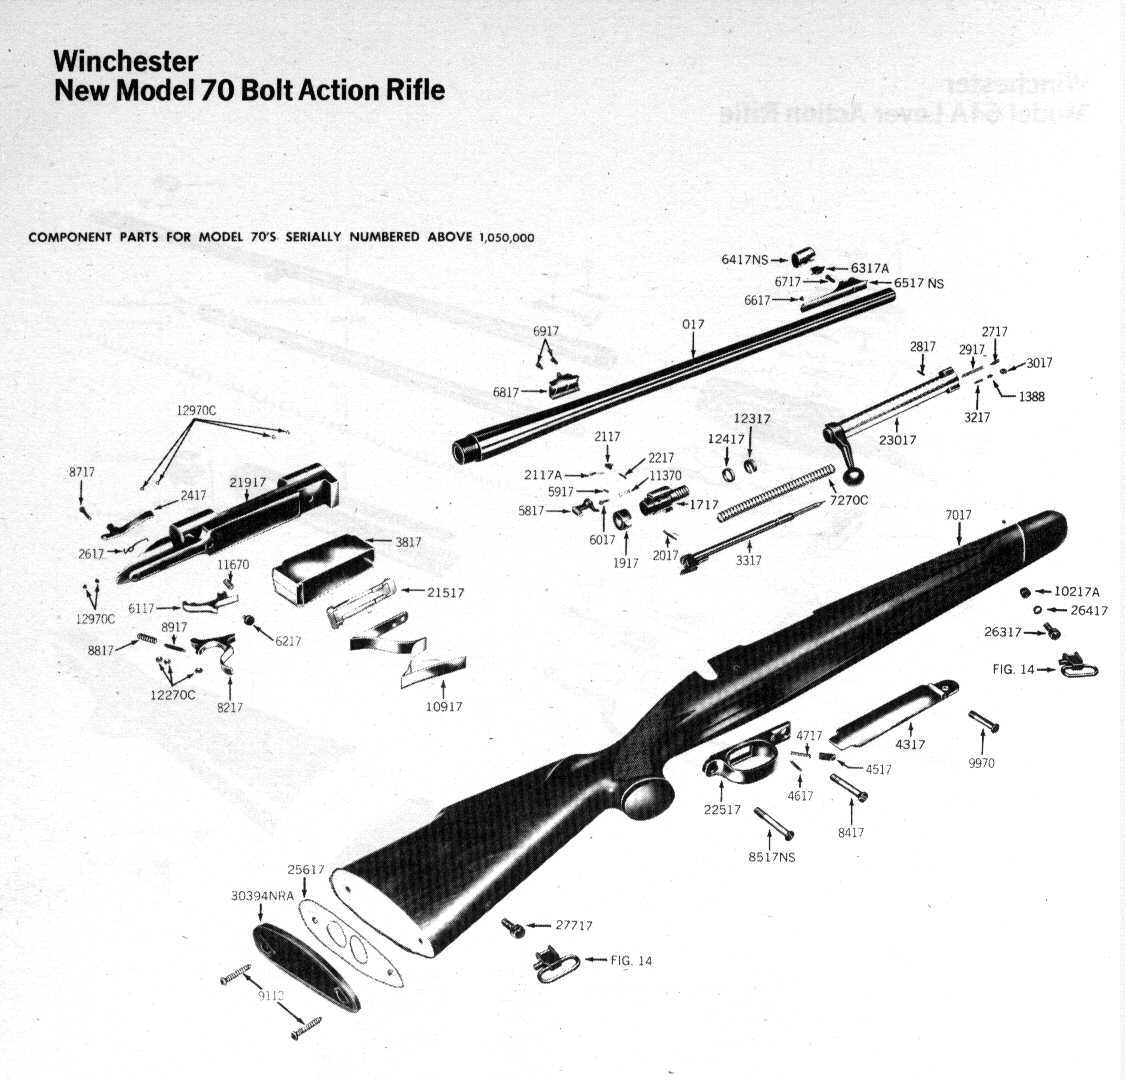 Marlin model 100 diagram wiring center downloads us armorment the art science of shooting rh usarmorment com marlin model 100 22 rifle marlin model 100g manual ccuart Image collections